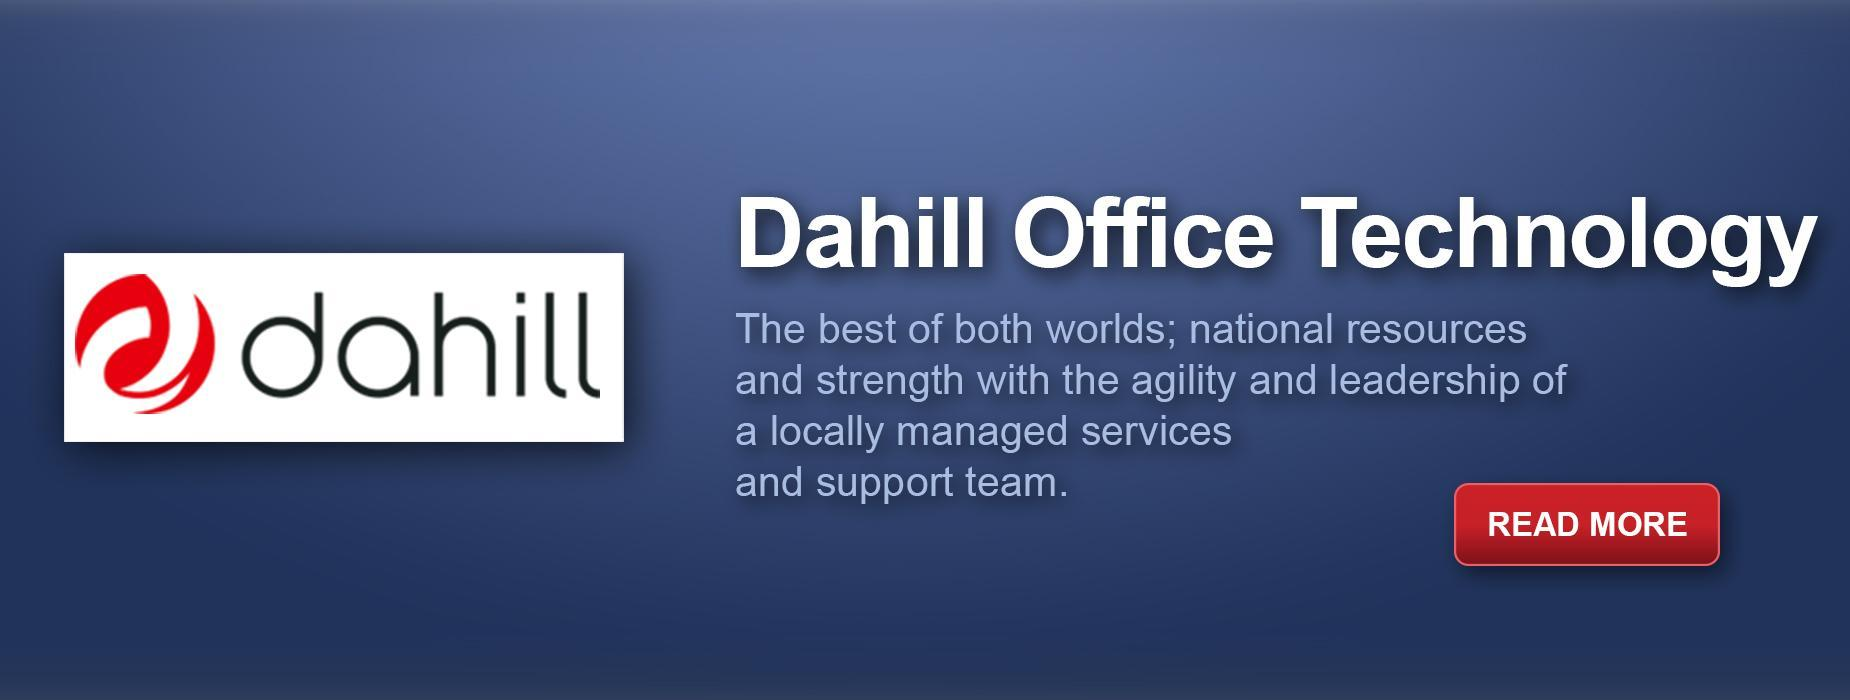 Dahill Office Technology Corporation, Read more